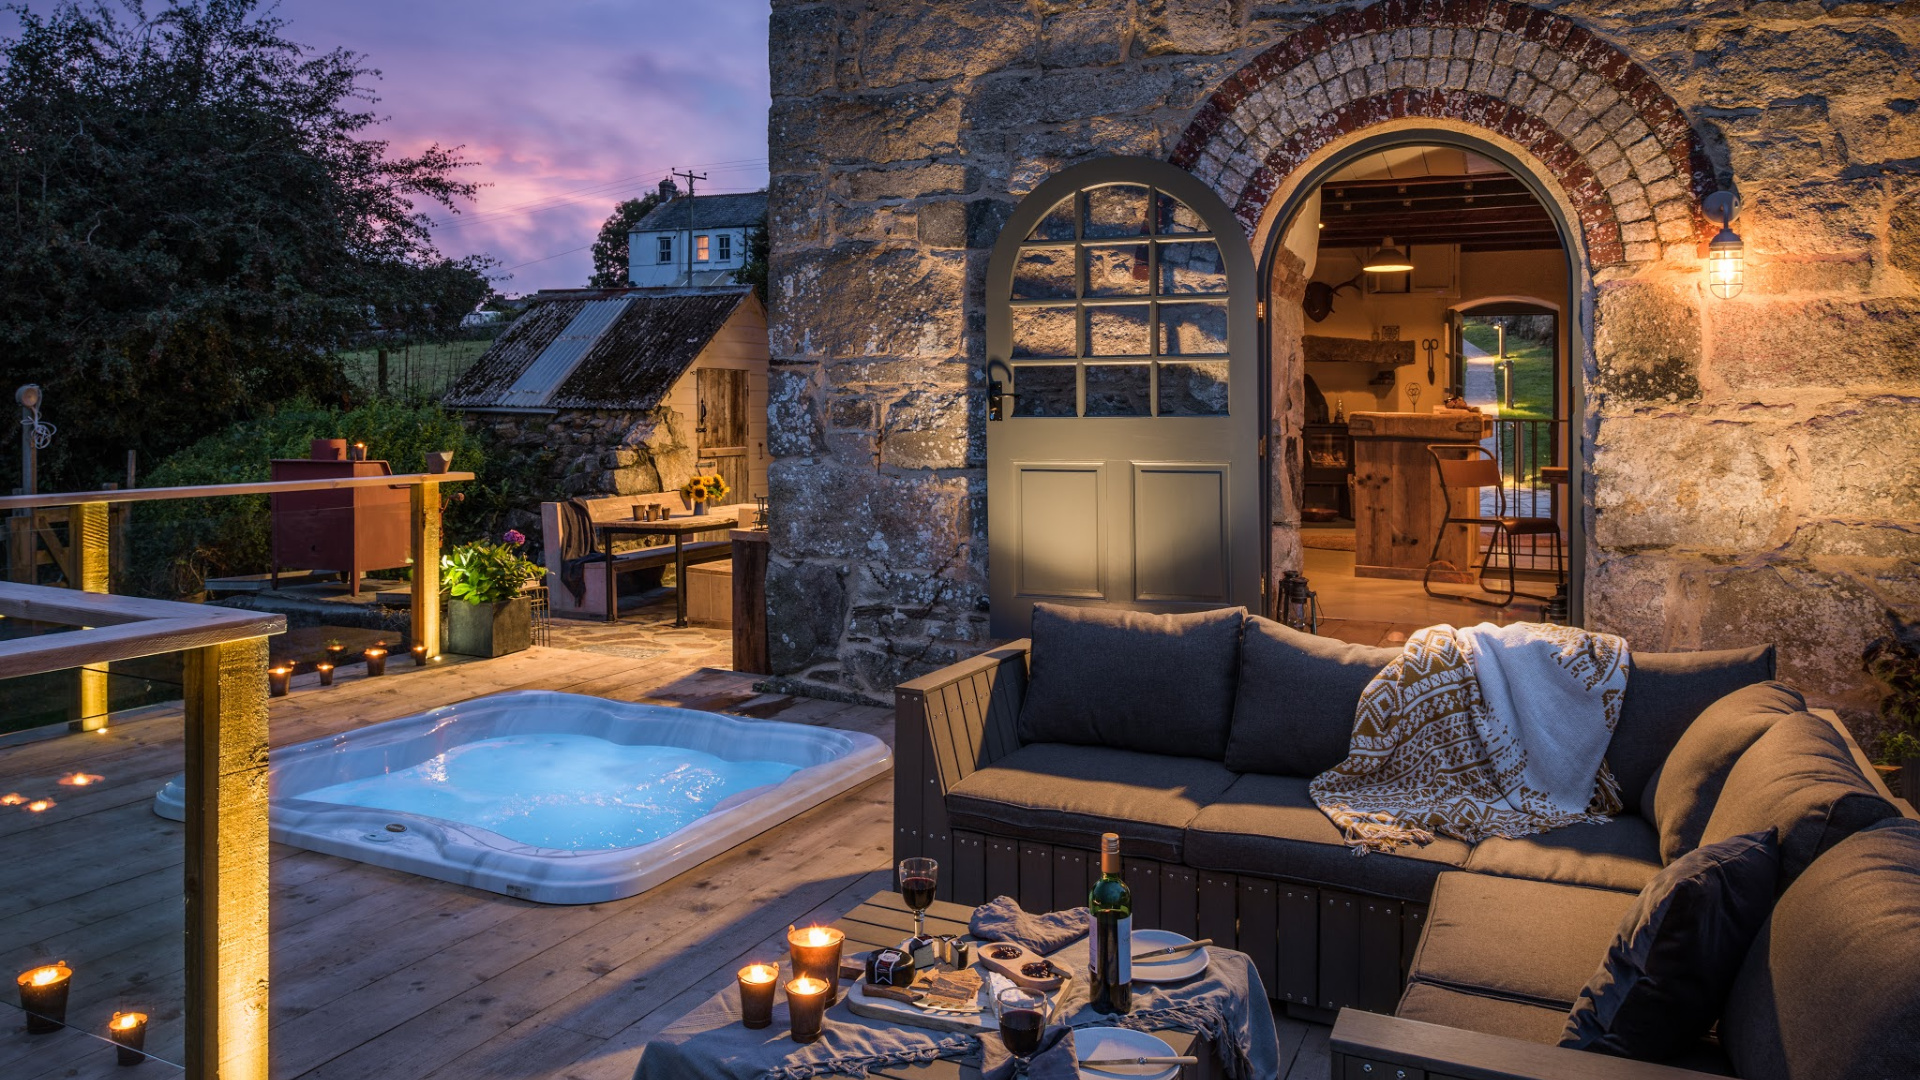 Unique places to stay - Unique Home Stays - The Stack - Humphrey Munson